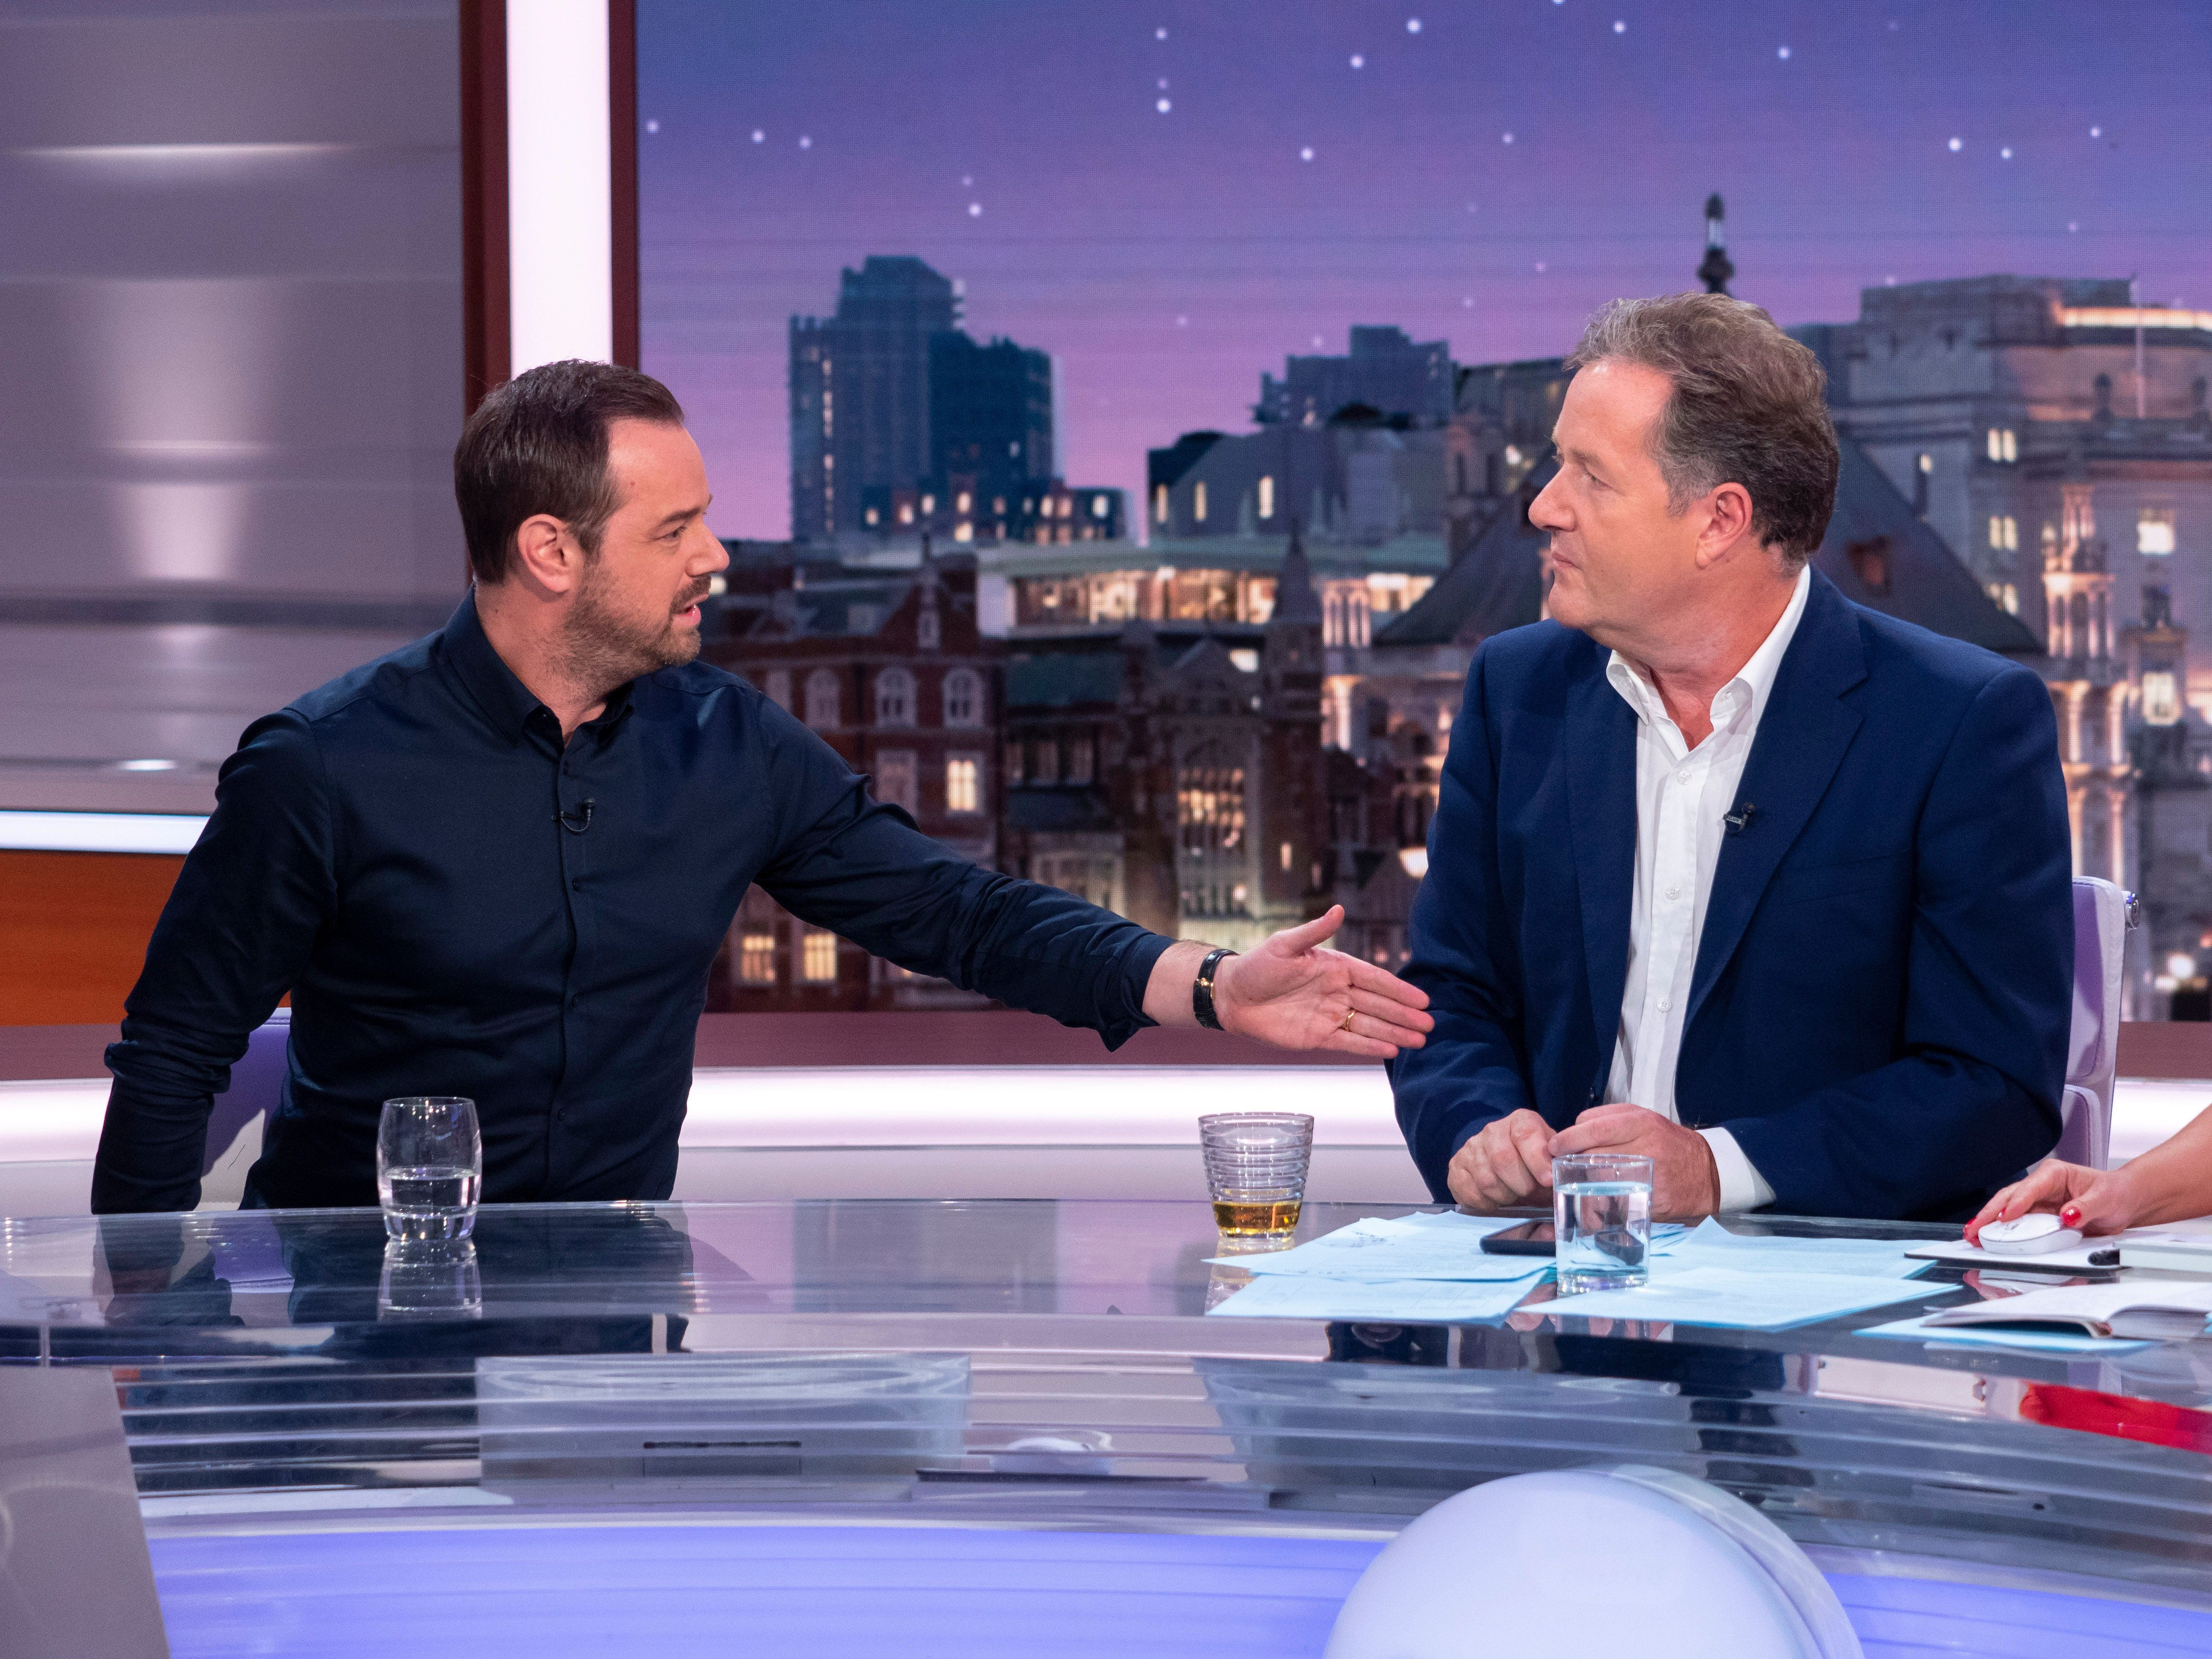 Danny Dyer Tells Piers Morgan To 'Stop Talking' As He Attempts To Apologise For Comments Made About His